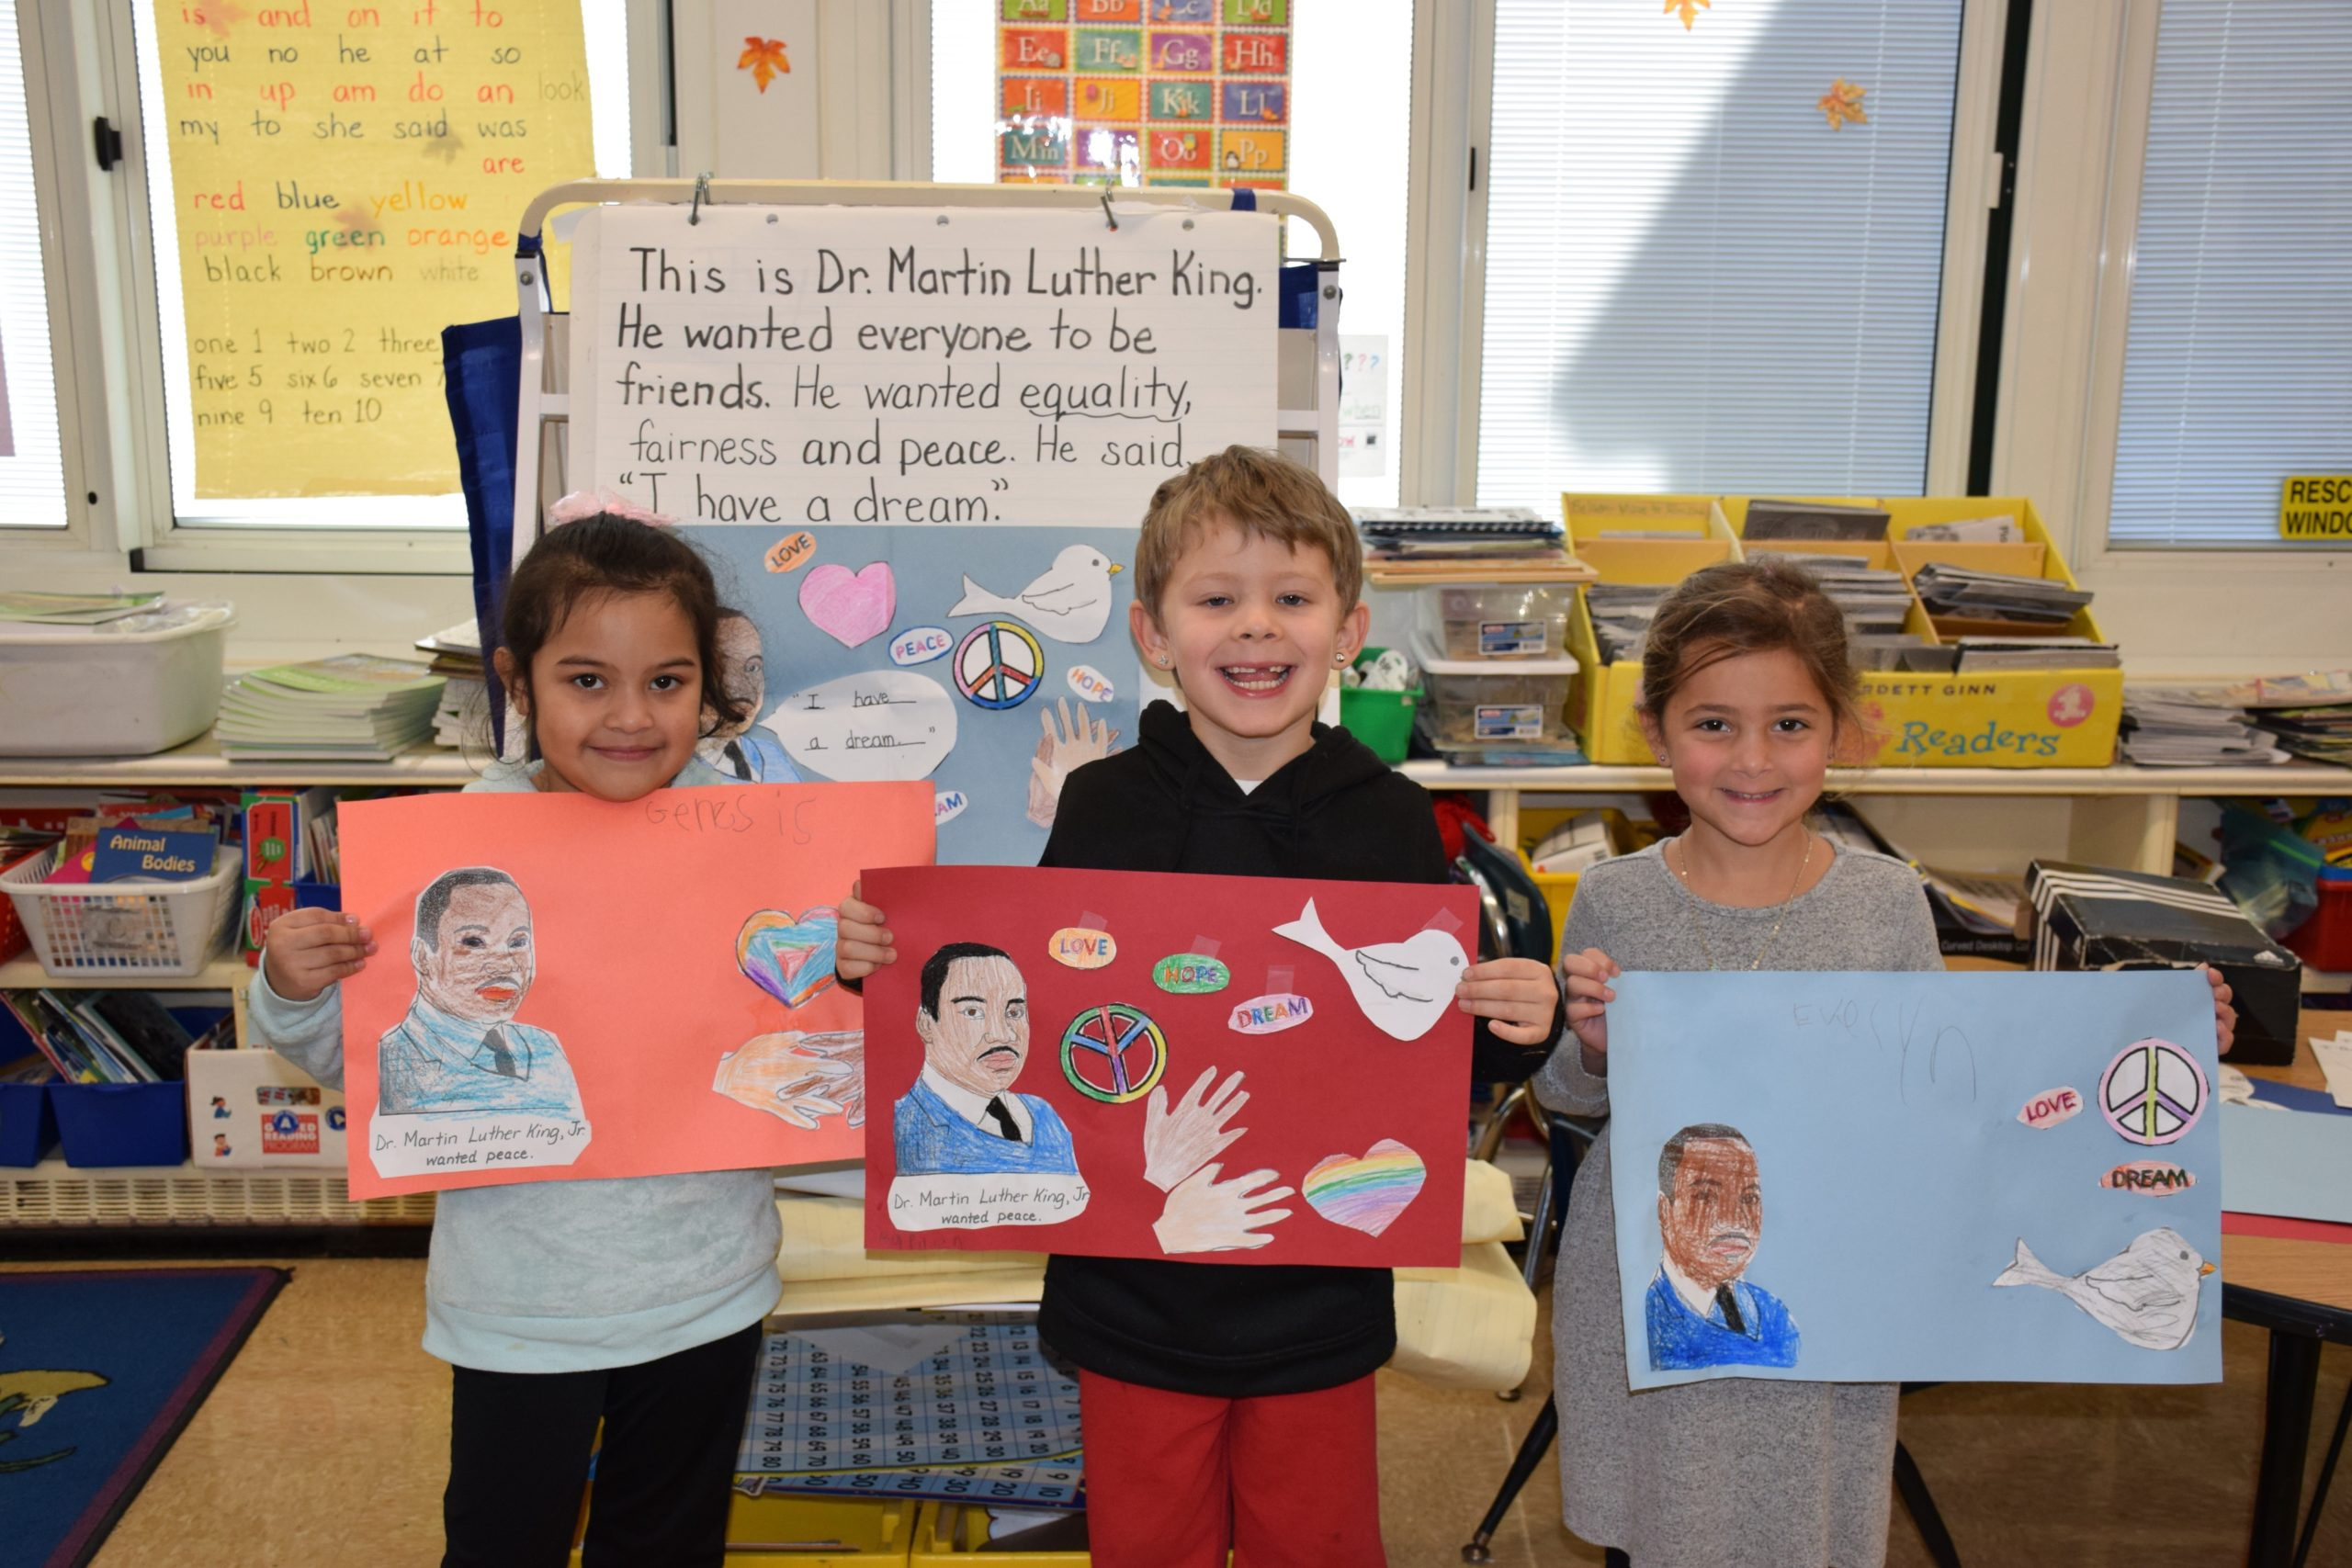 Patricia DeCicco's kindergartners at Westhampton Beach Elementary School learned about the life of Dr. Martin Luther King Jr. on Jan. 17. Following the discussion, the students, including, from left, Genesis Lopez Castellanos, Raiden Komarovskij and Evelyn Bennett,  designed posters depicting what they learned about the civil rights leader.